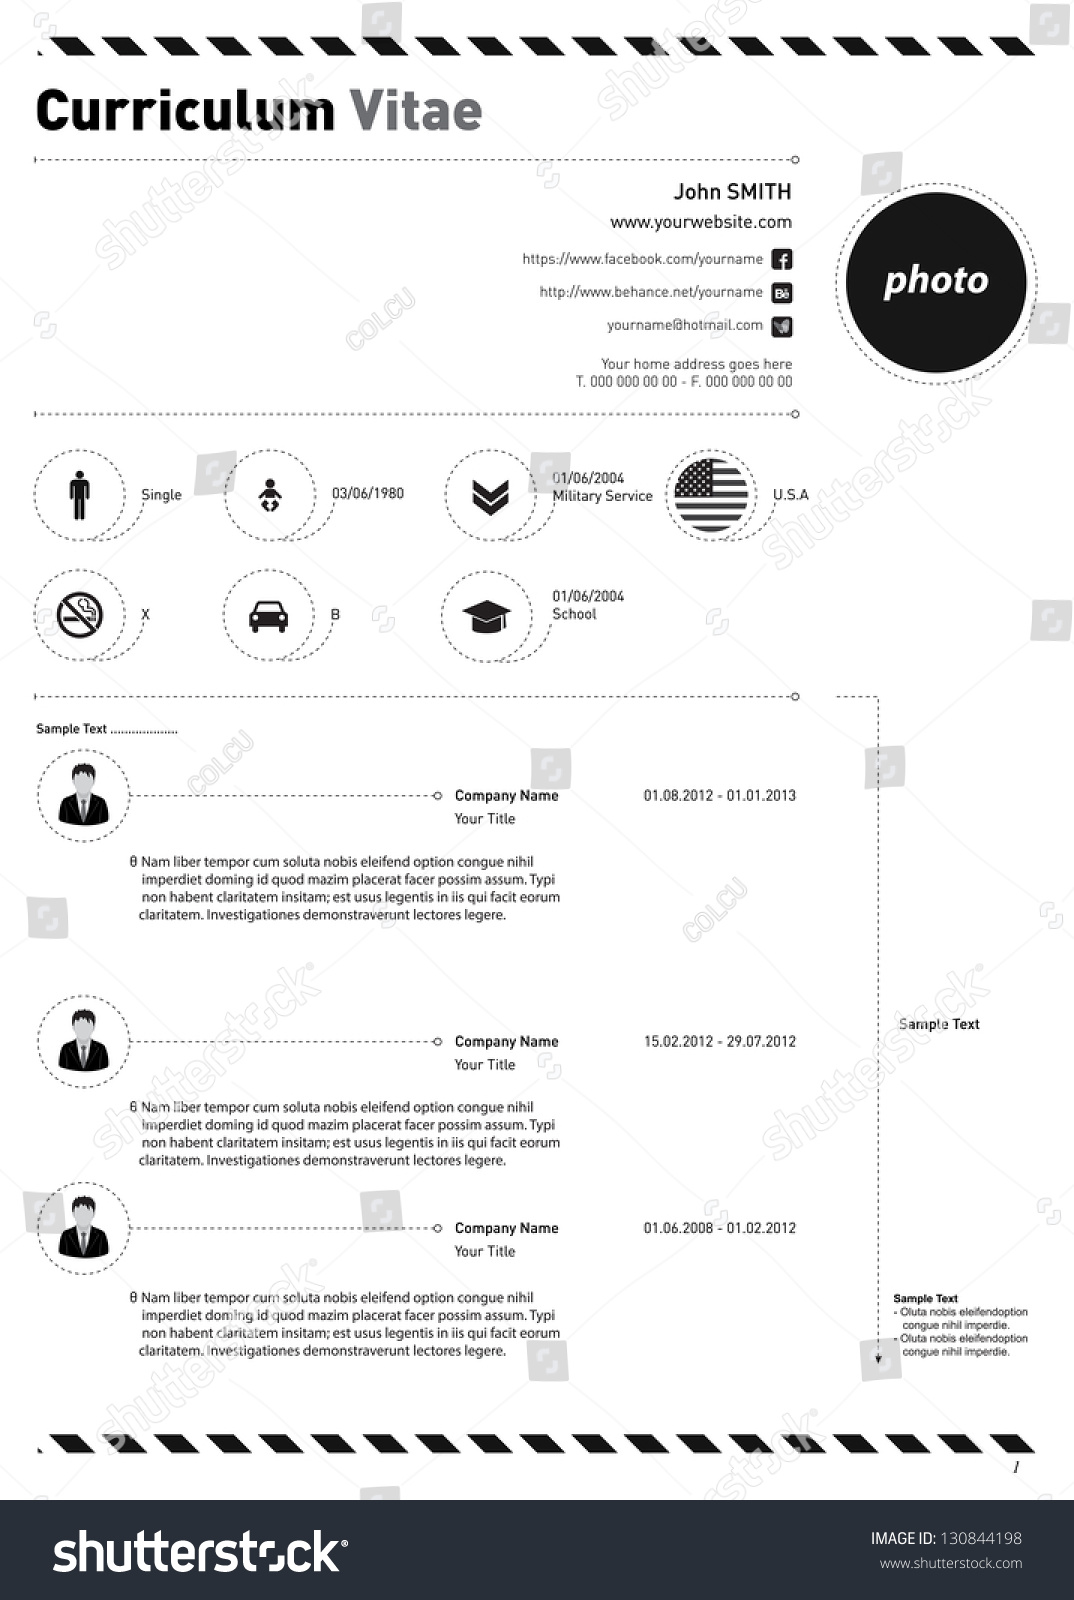 curriculum vitae resume design everyone stock vector 130844198 curriculum vitae or resume design for everyone